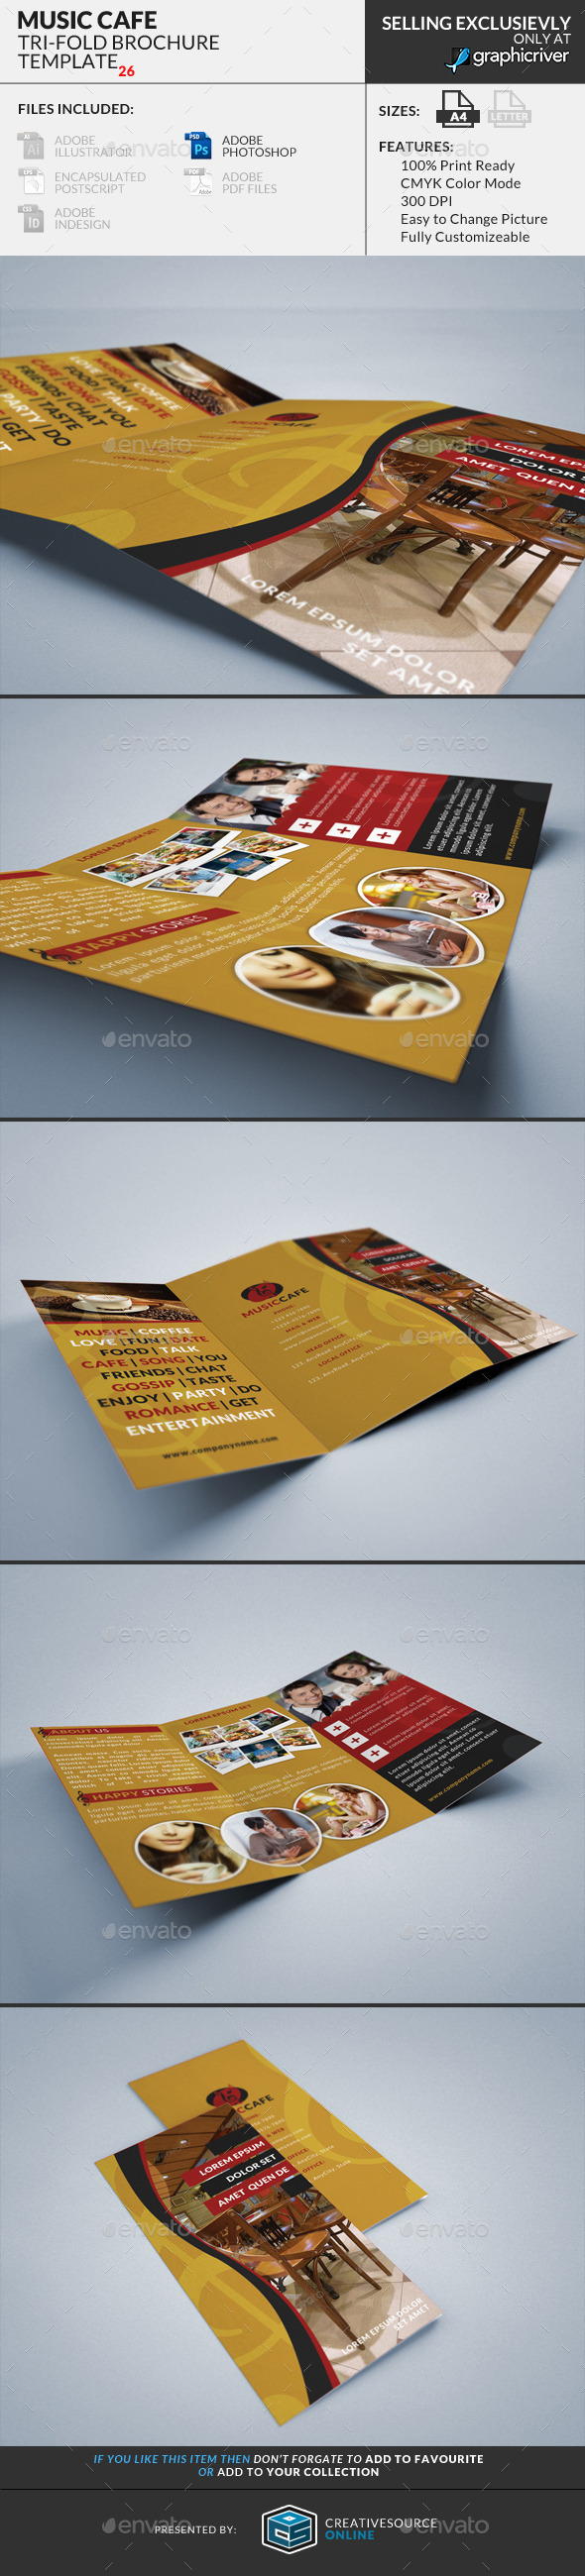 Trifold Brochure 26 : Music Cafe - Corporate Brochures